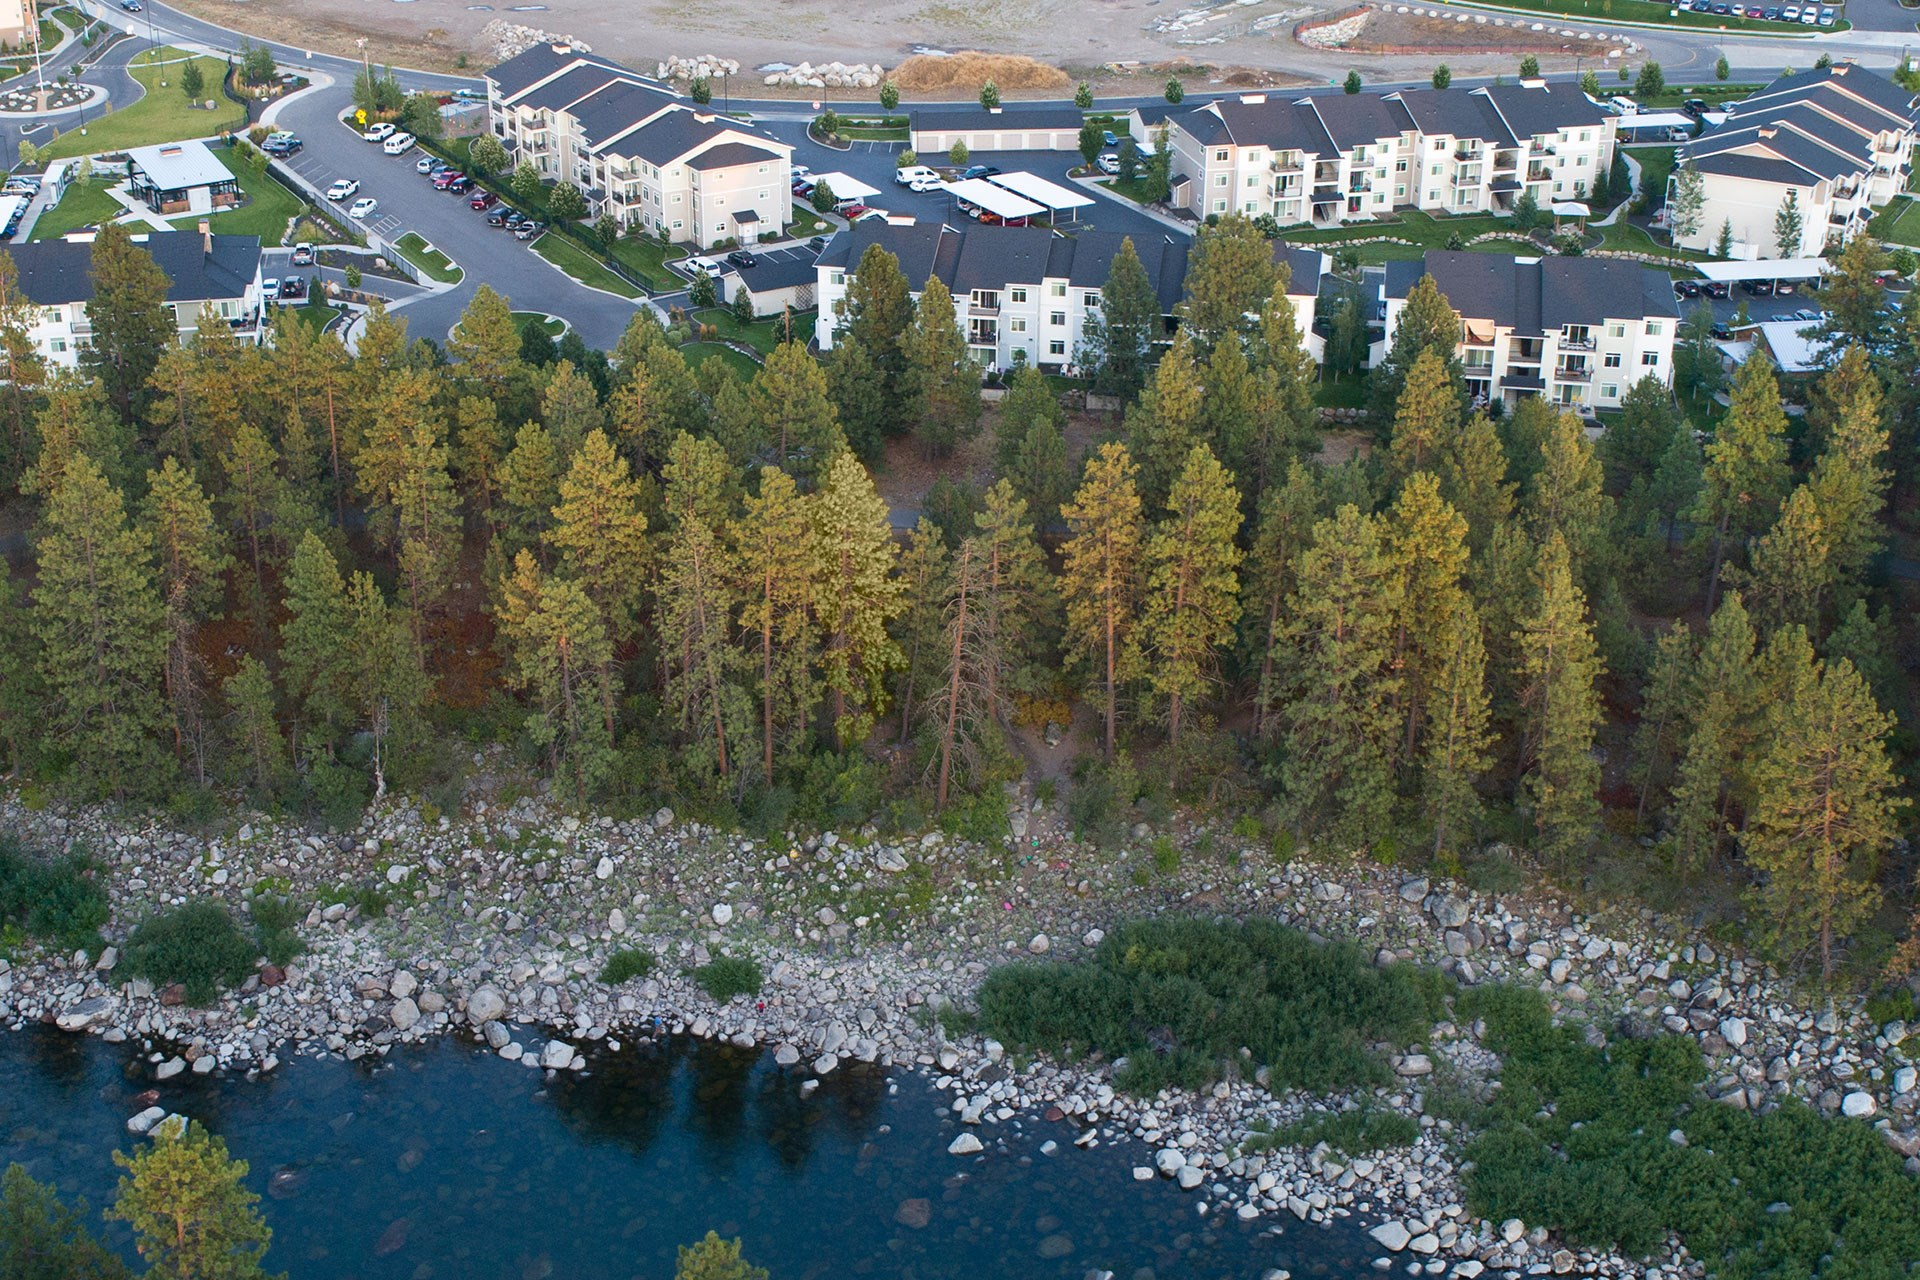 River House Apartments Spokane Valley, Washington Aerial View of Property